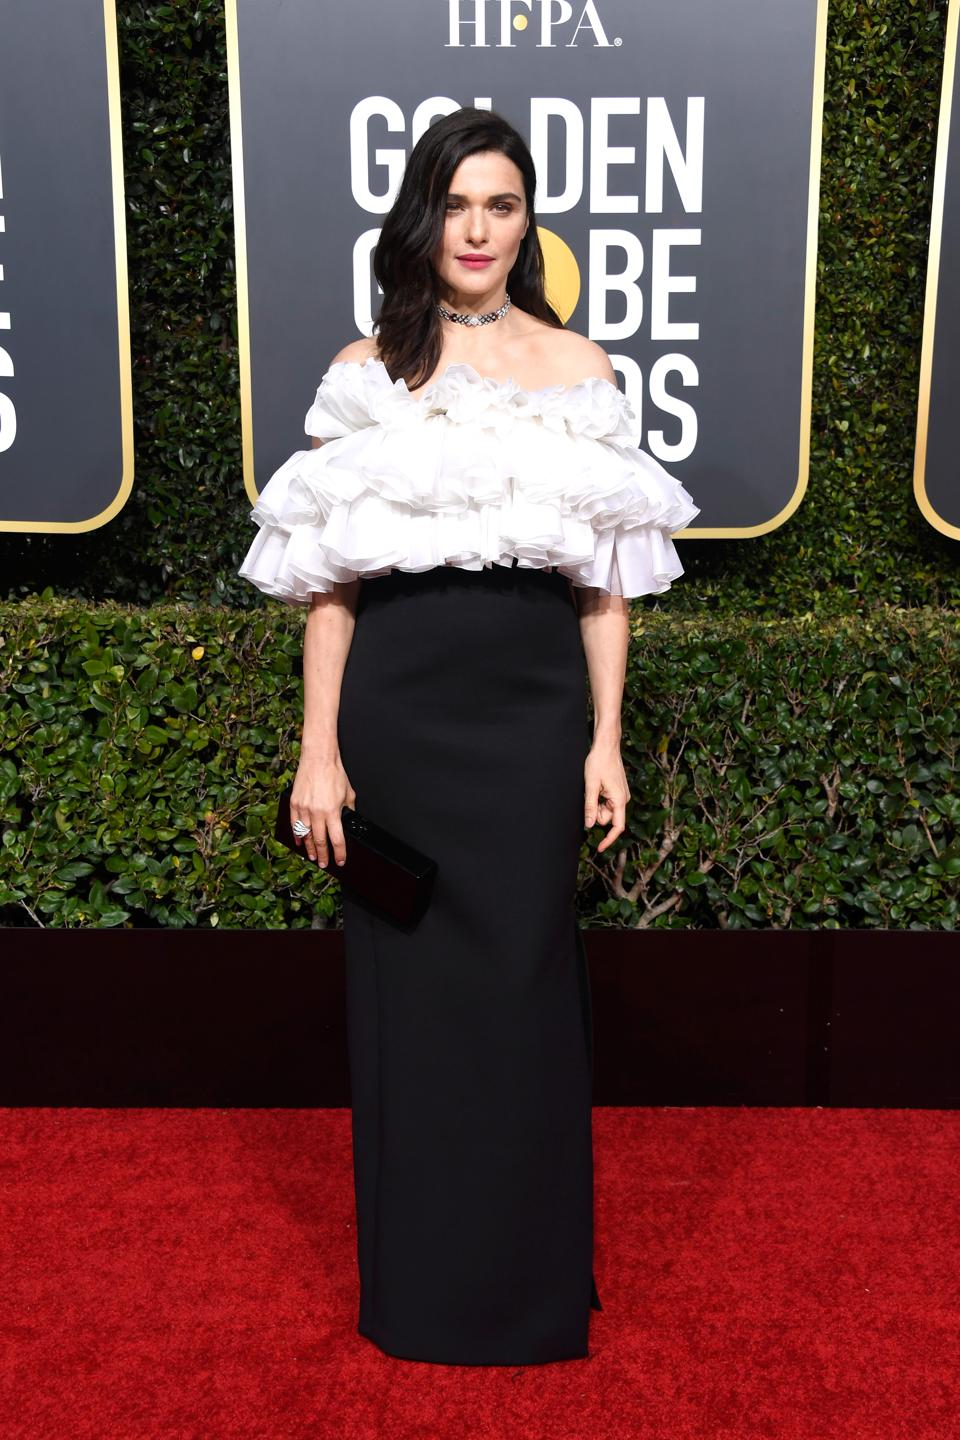 One of The Favourites: Rachel Weisz rocks ruffles on the red carpet.